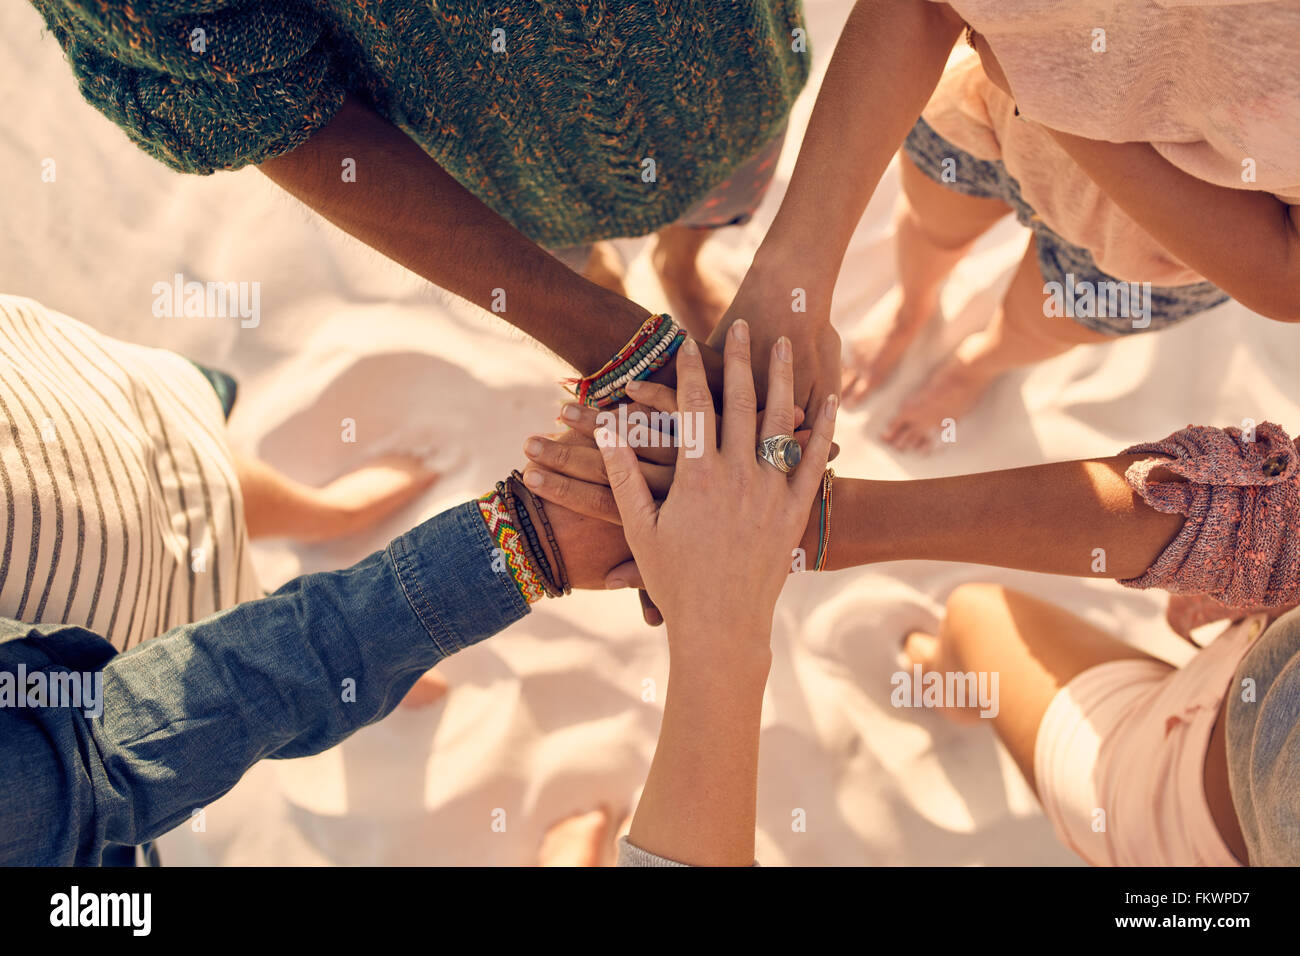 Group of young men and women showing unity. Group of young friends putting their hands together at the beach. - Stock Image